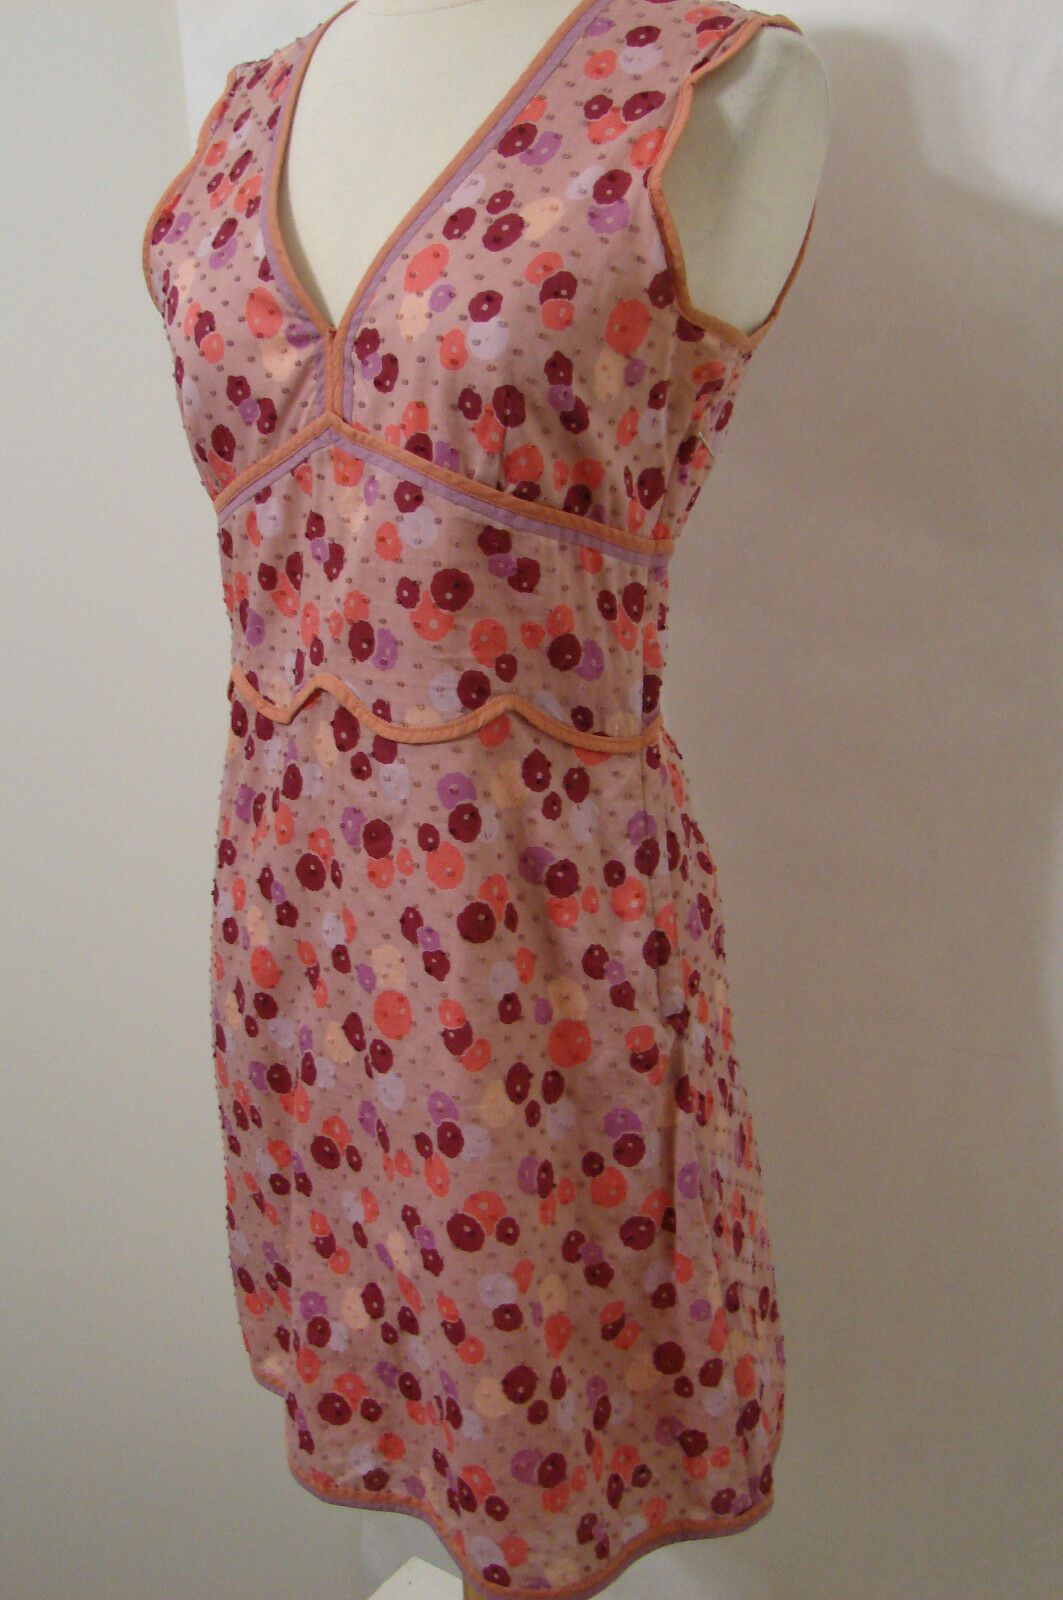 MARC JACOBS Cotton Textured Multi-colord Sleeveless Bias Cut Dress NWOT 4